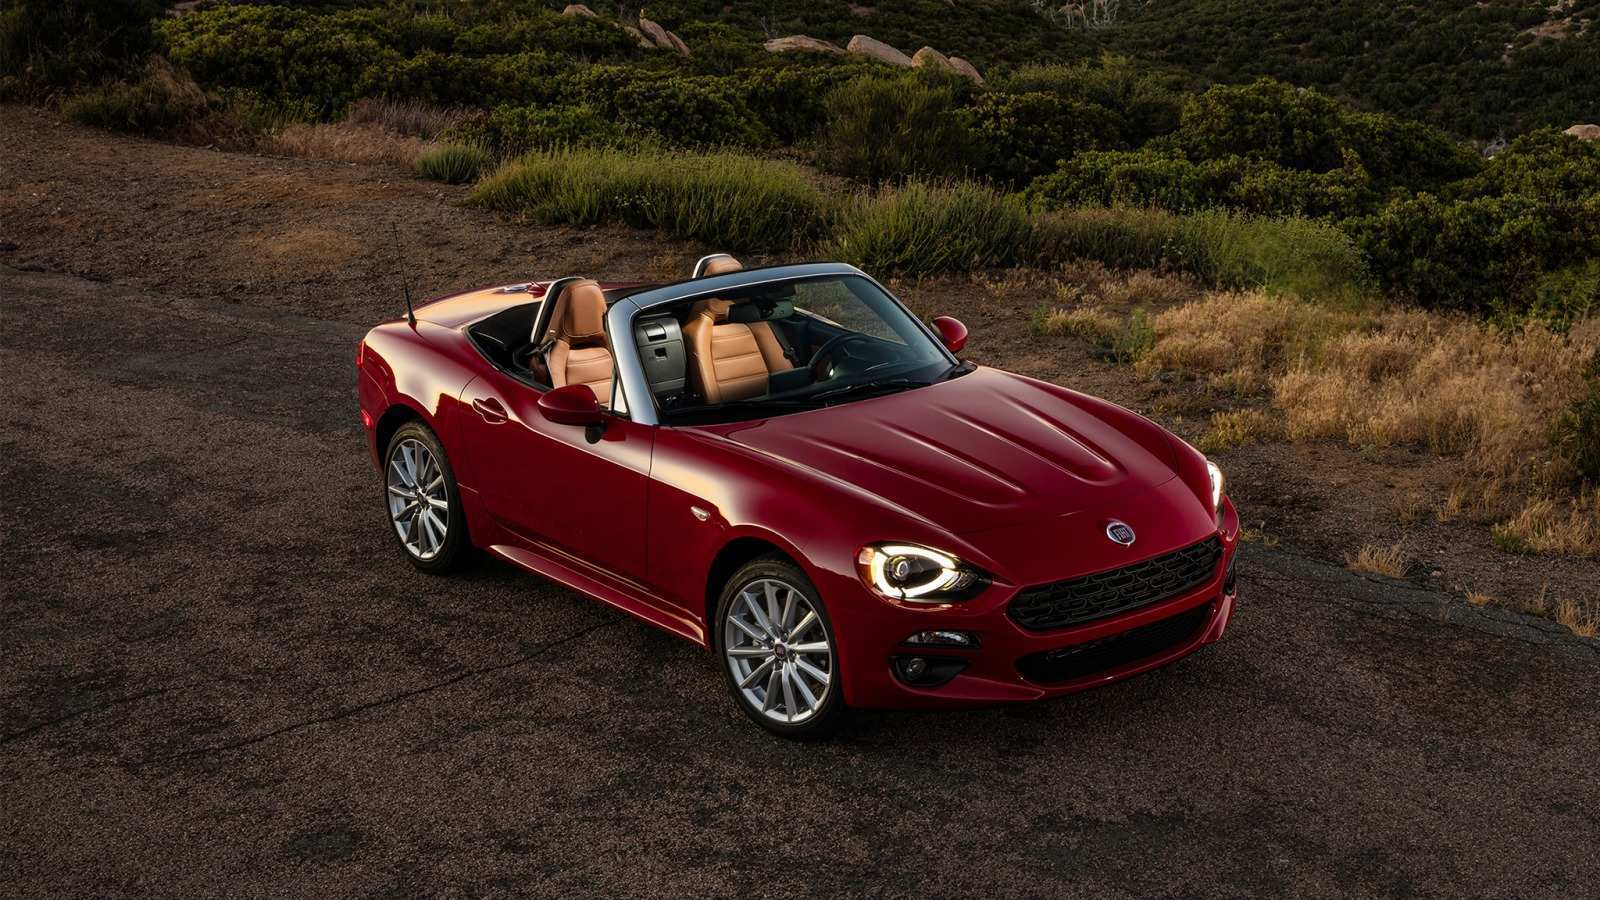 20 Great 2019 Fiat Convertible Release Date by 2019 Fiat Convertible